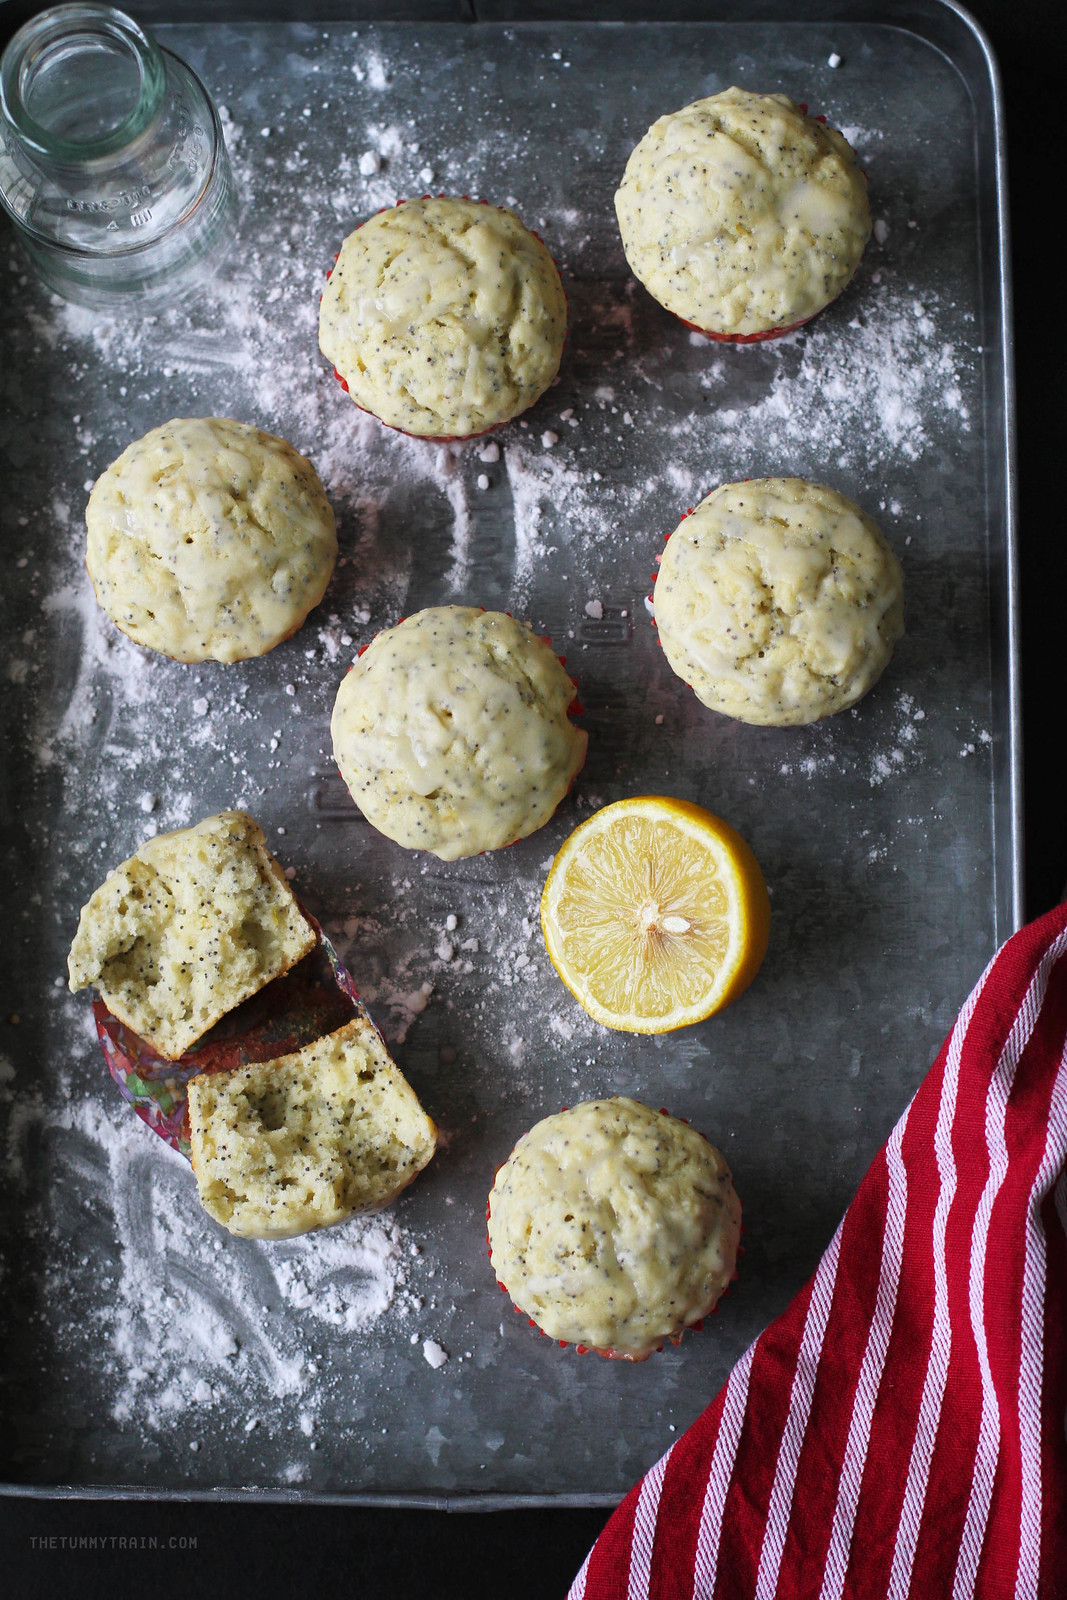 24498177334 93afd94f2b h - Getting personal with these Lemon Poppyseed Muffins